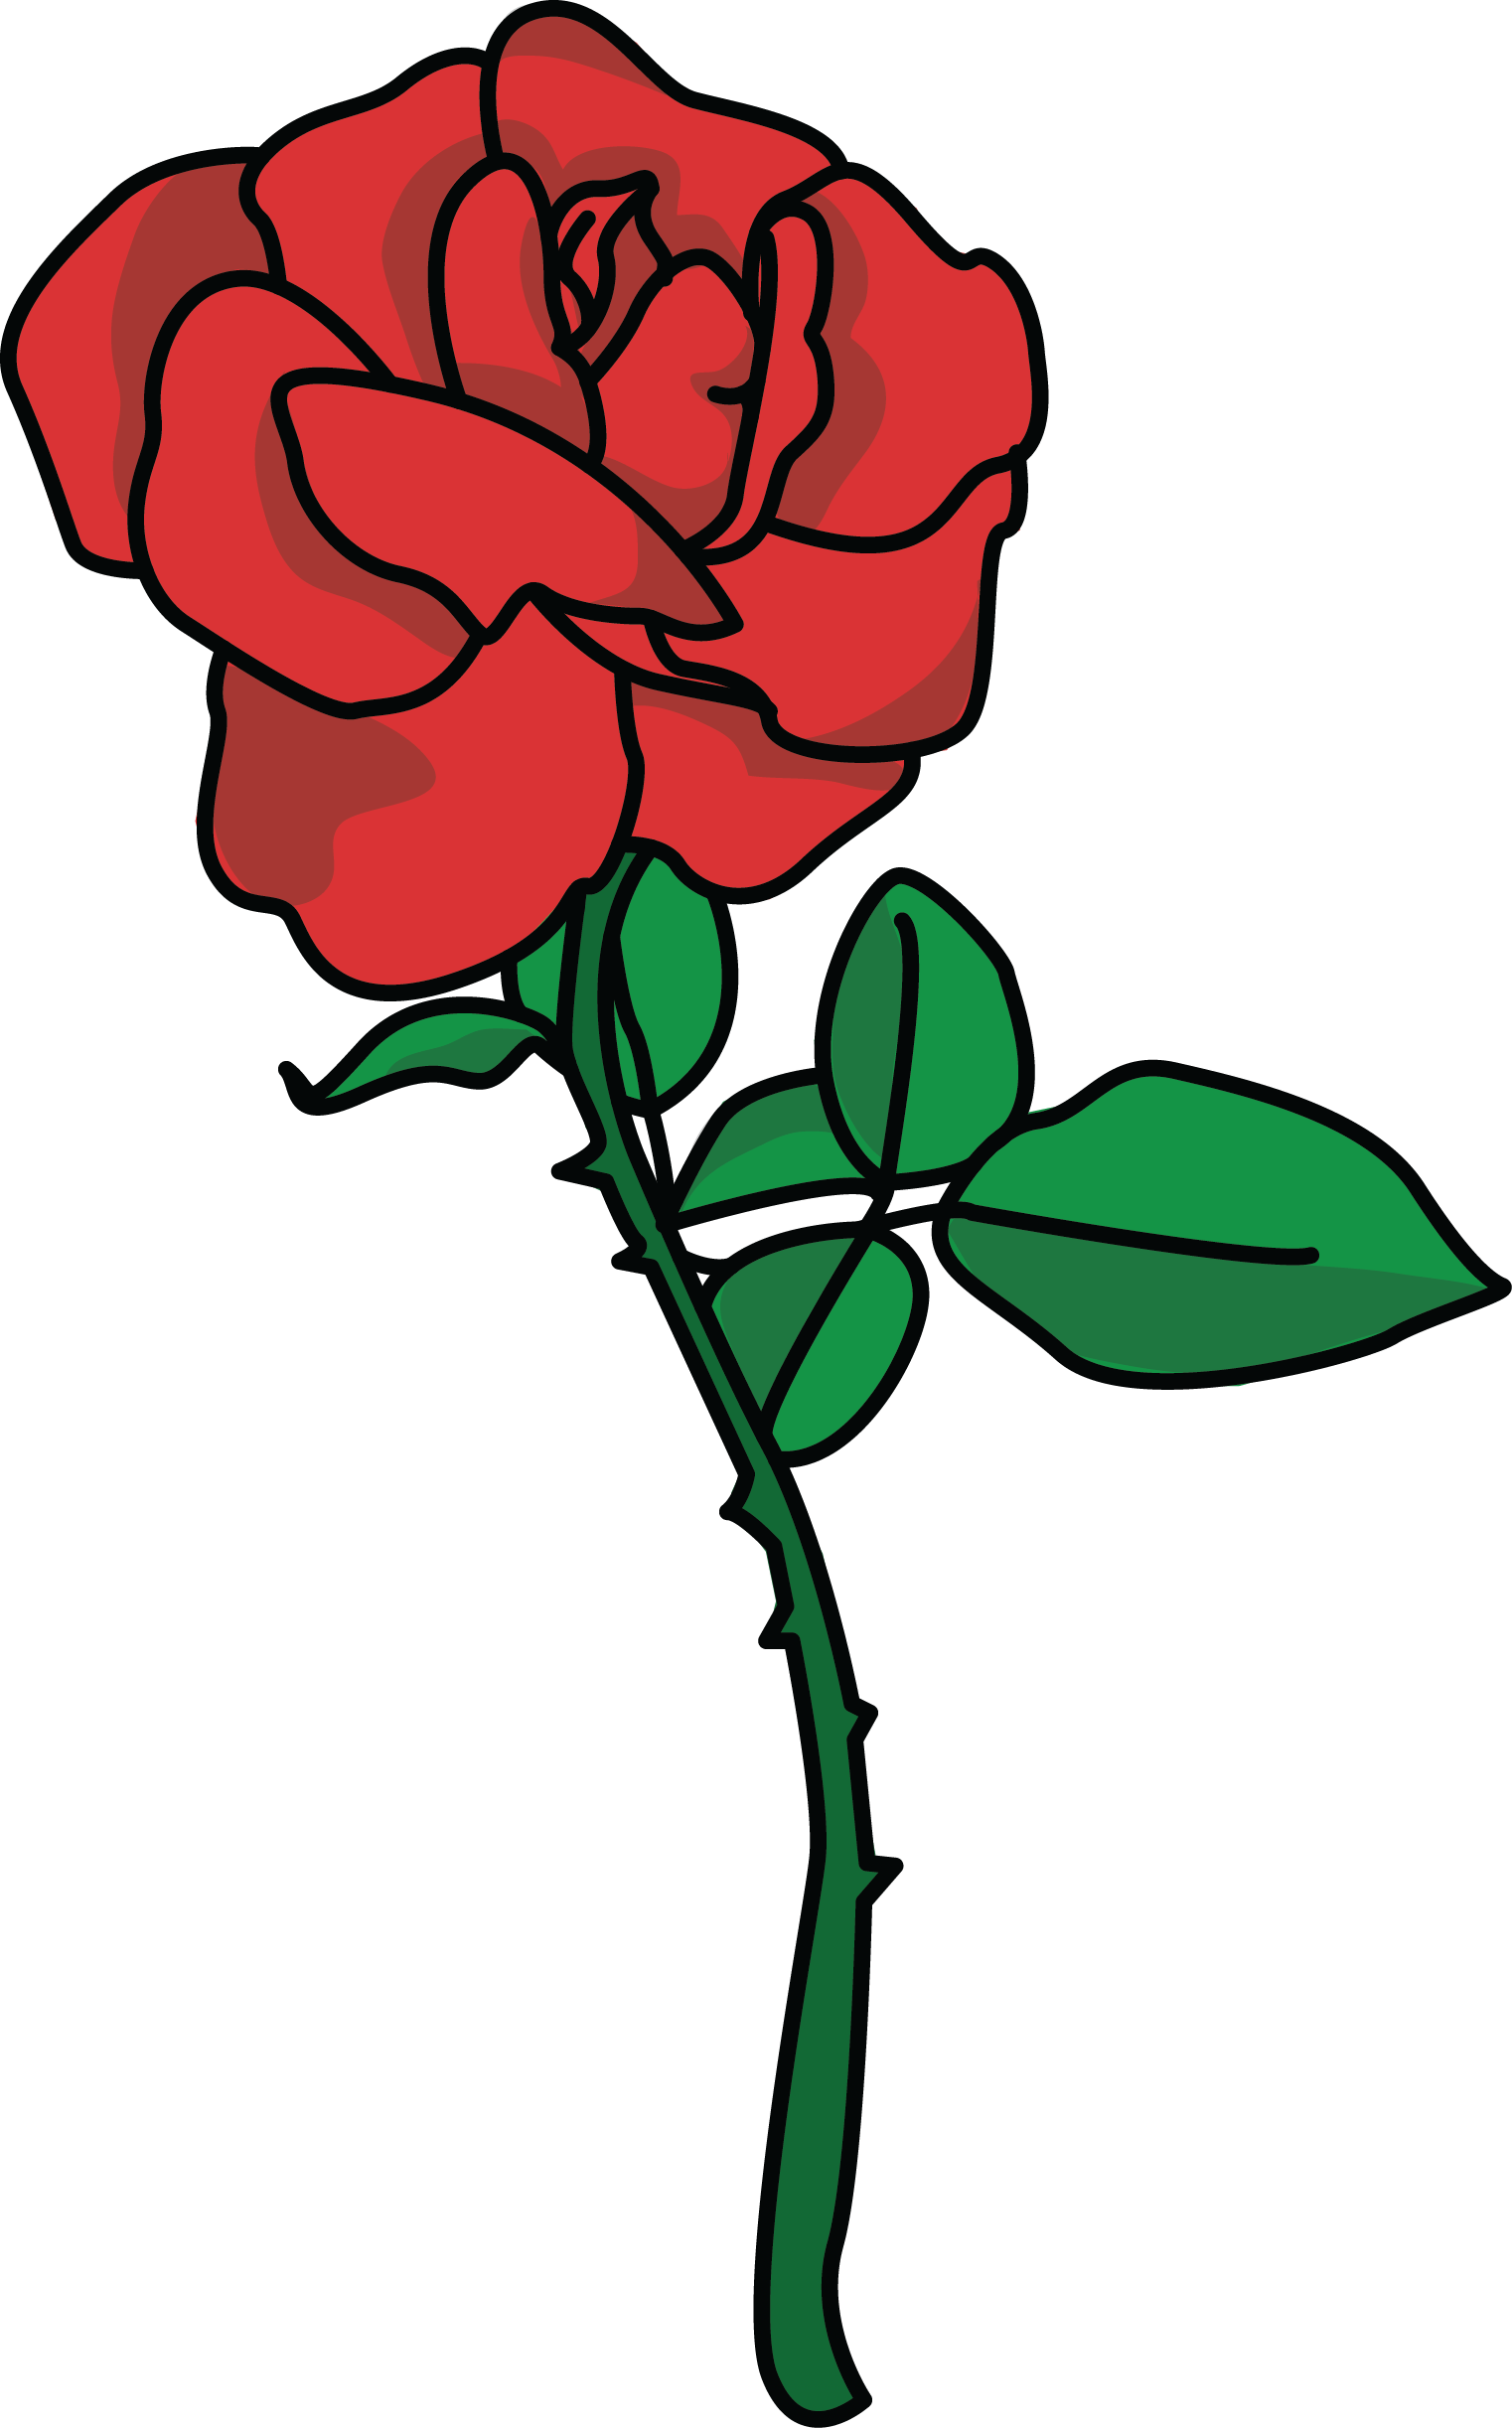 Rose clipart high resolution. Free clip art res